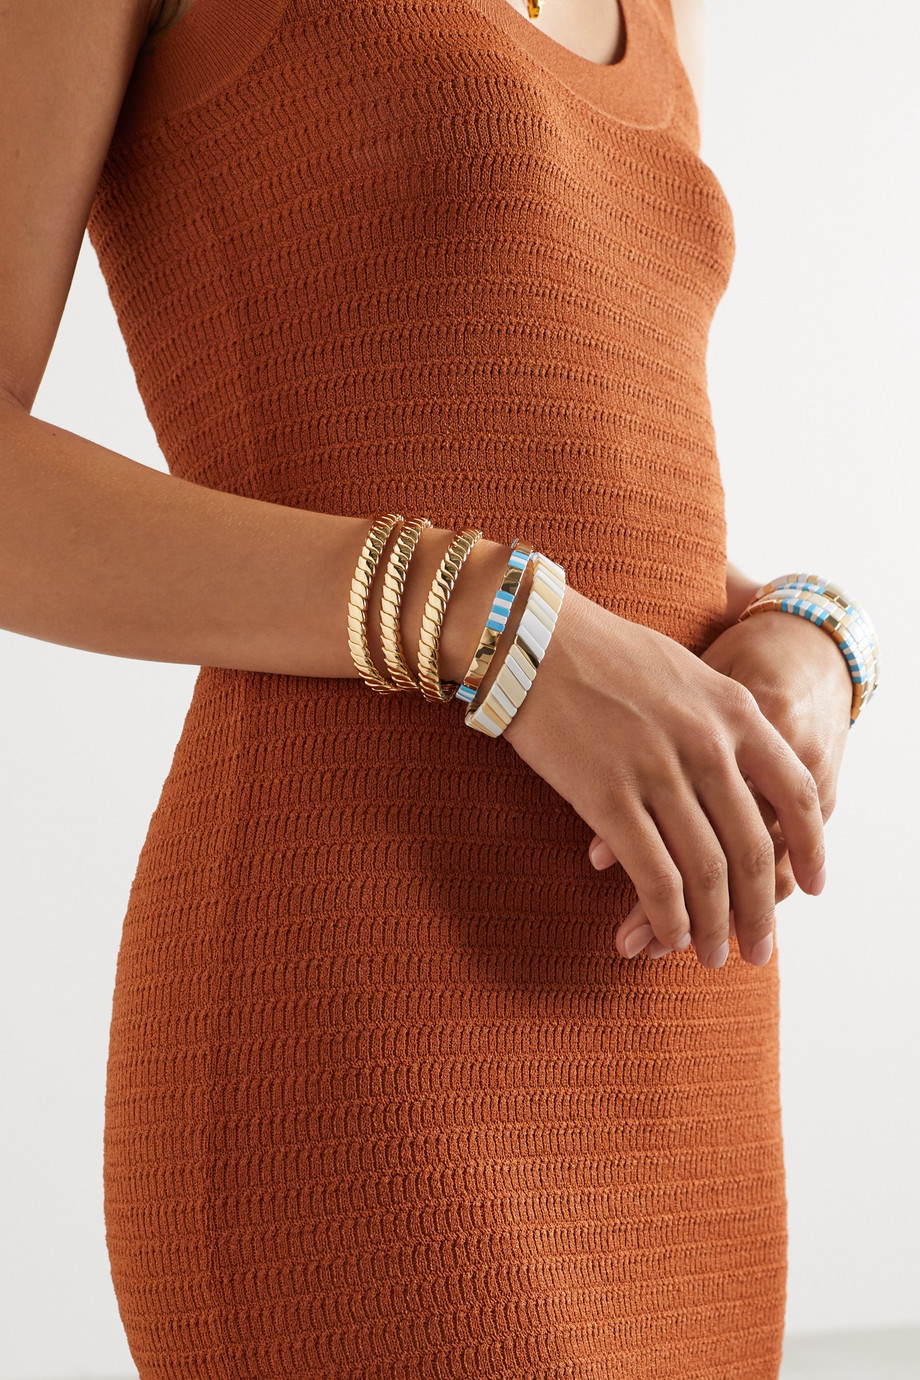 Roxanne Assoulin Simple Rope set of three gold-tone bracelets